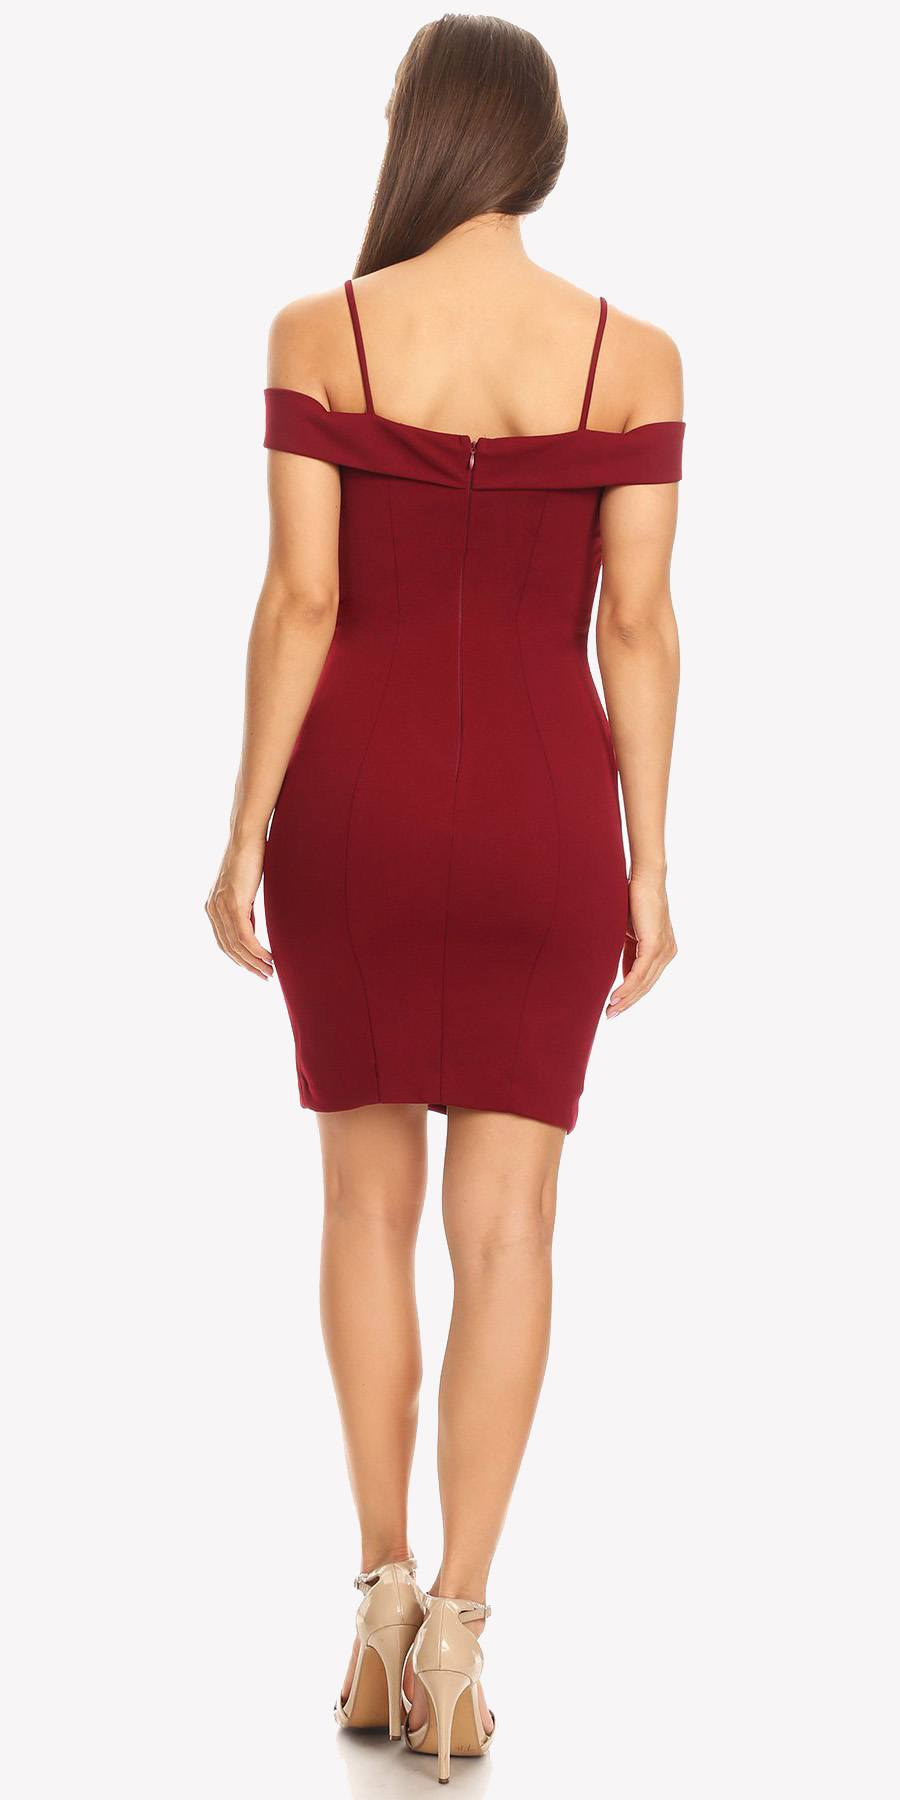 f620abe0d59c ... Black Off Shoulder Sweetheart Neckline Cocktail Dress with Spaghetti Strap  Burgundy ...